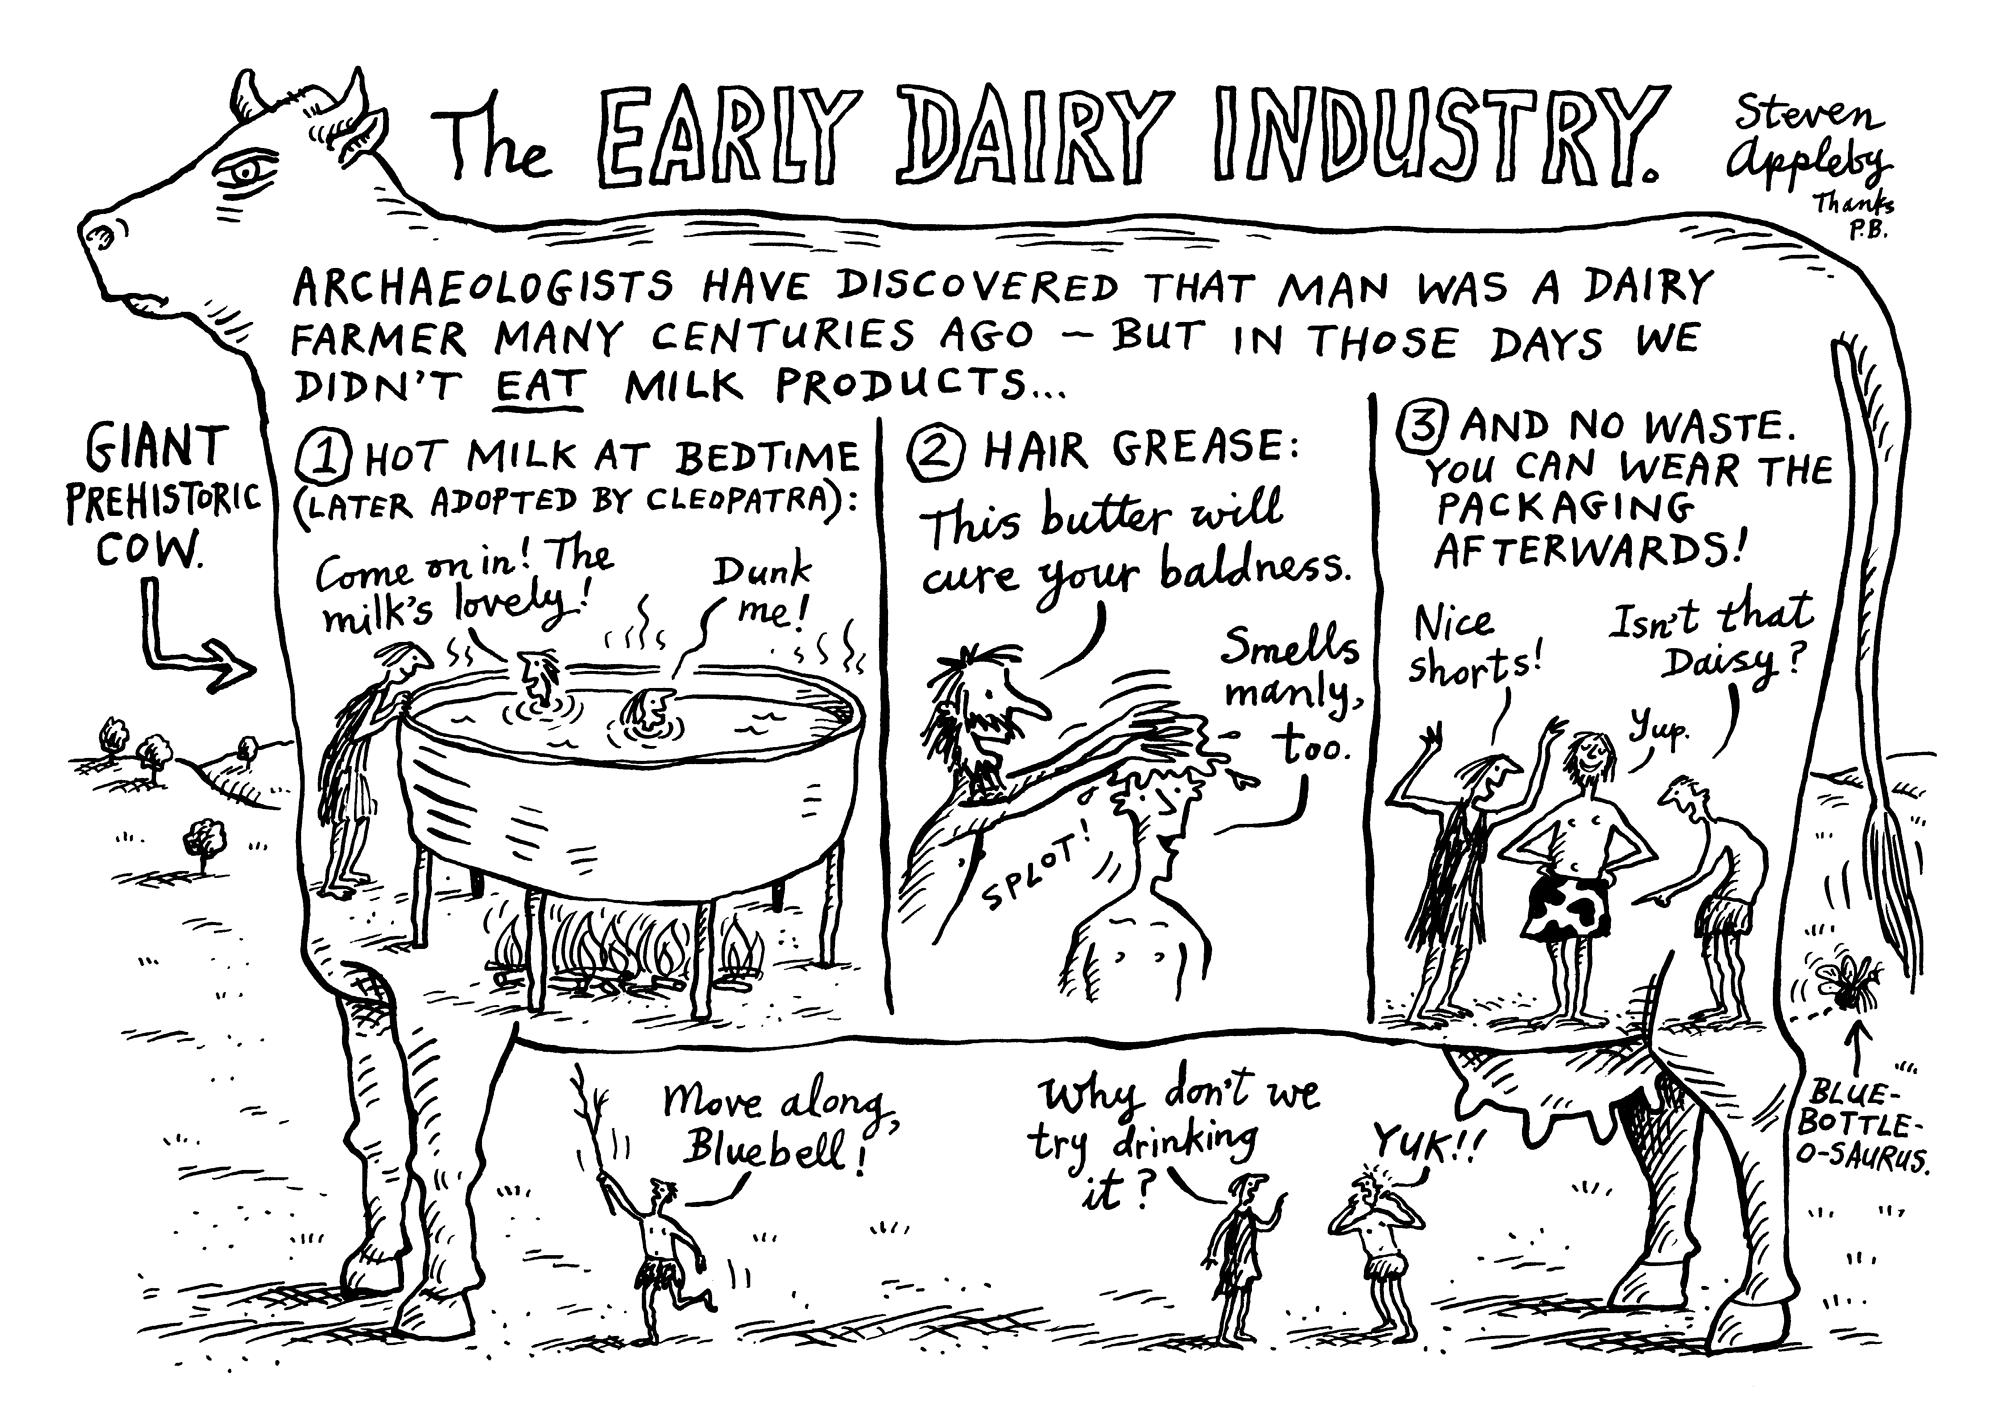 012-Early-dairy-industry-copy.png